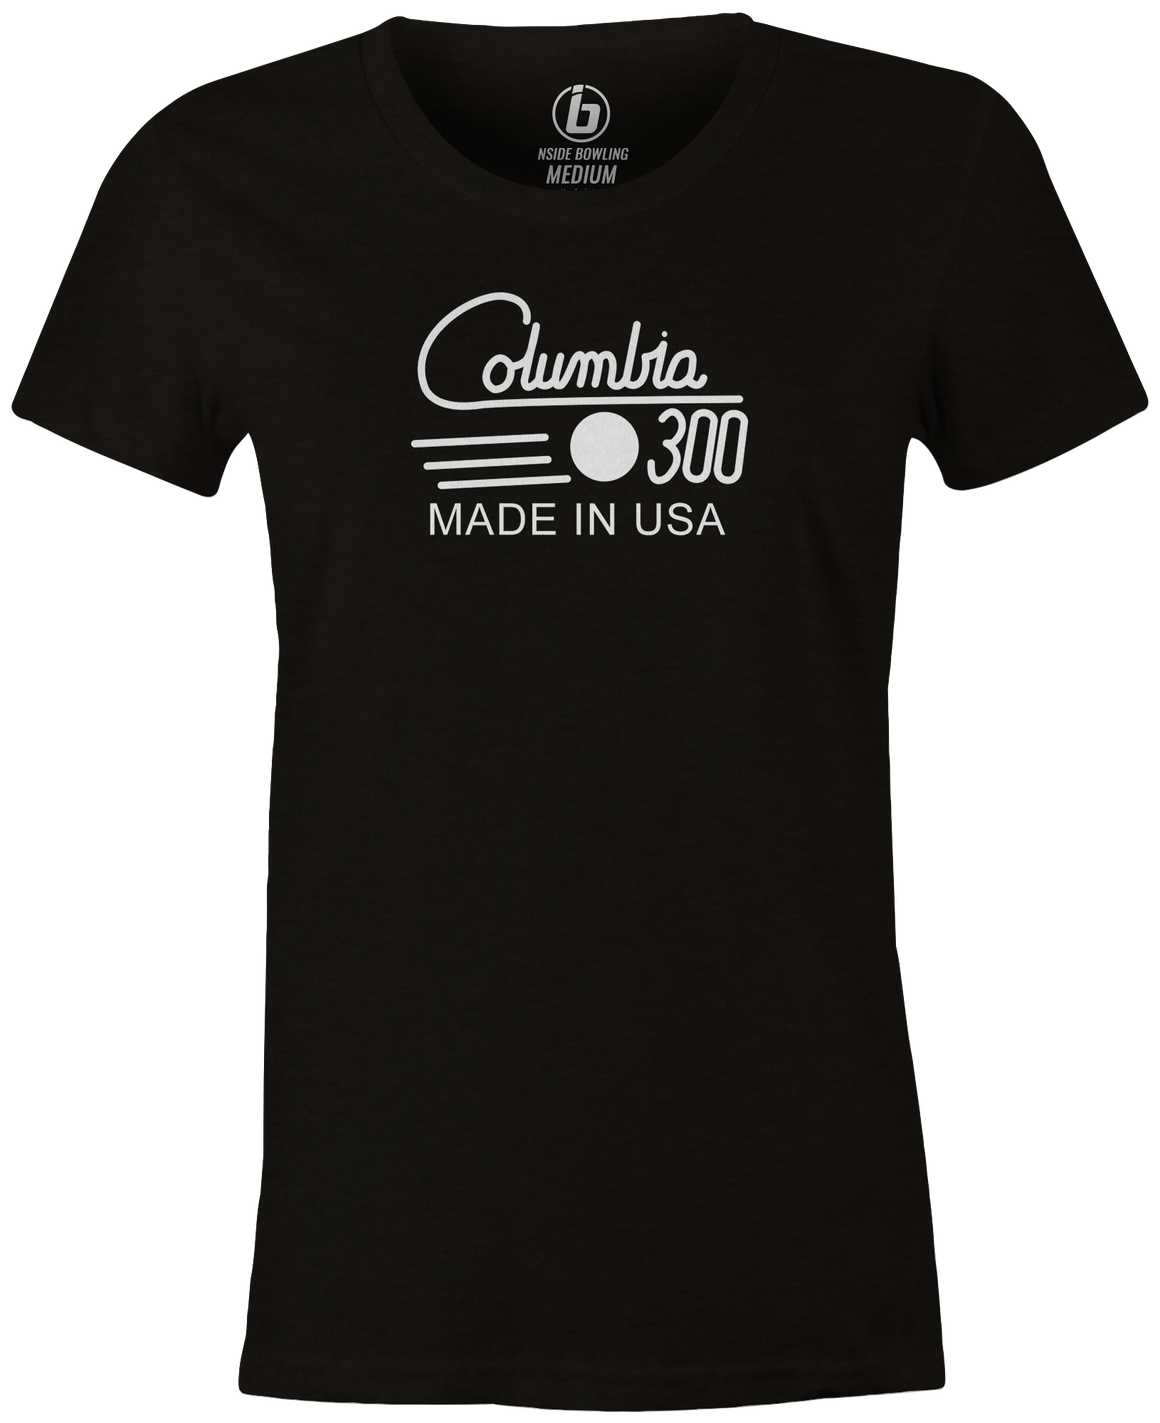 Columbia 300 Retro Women's